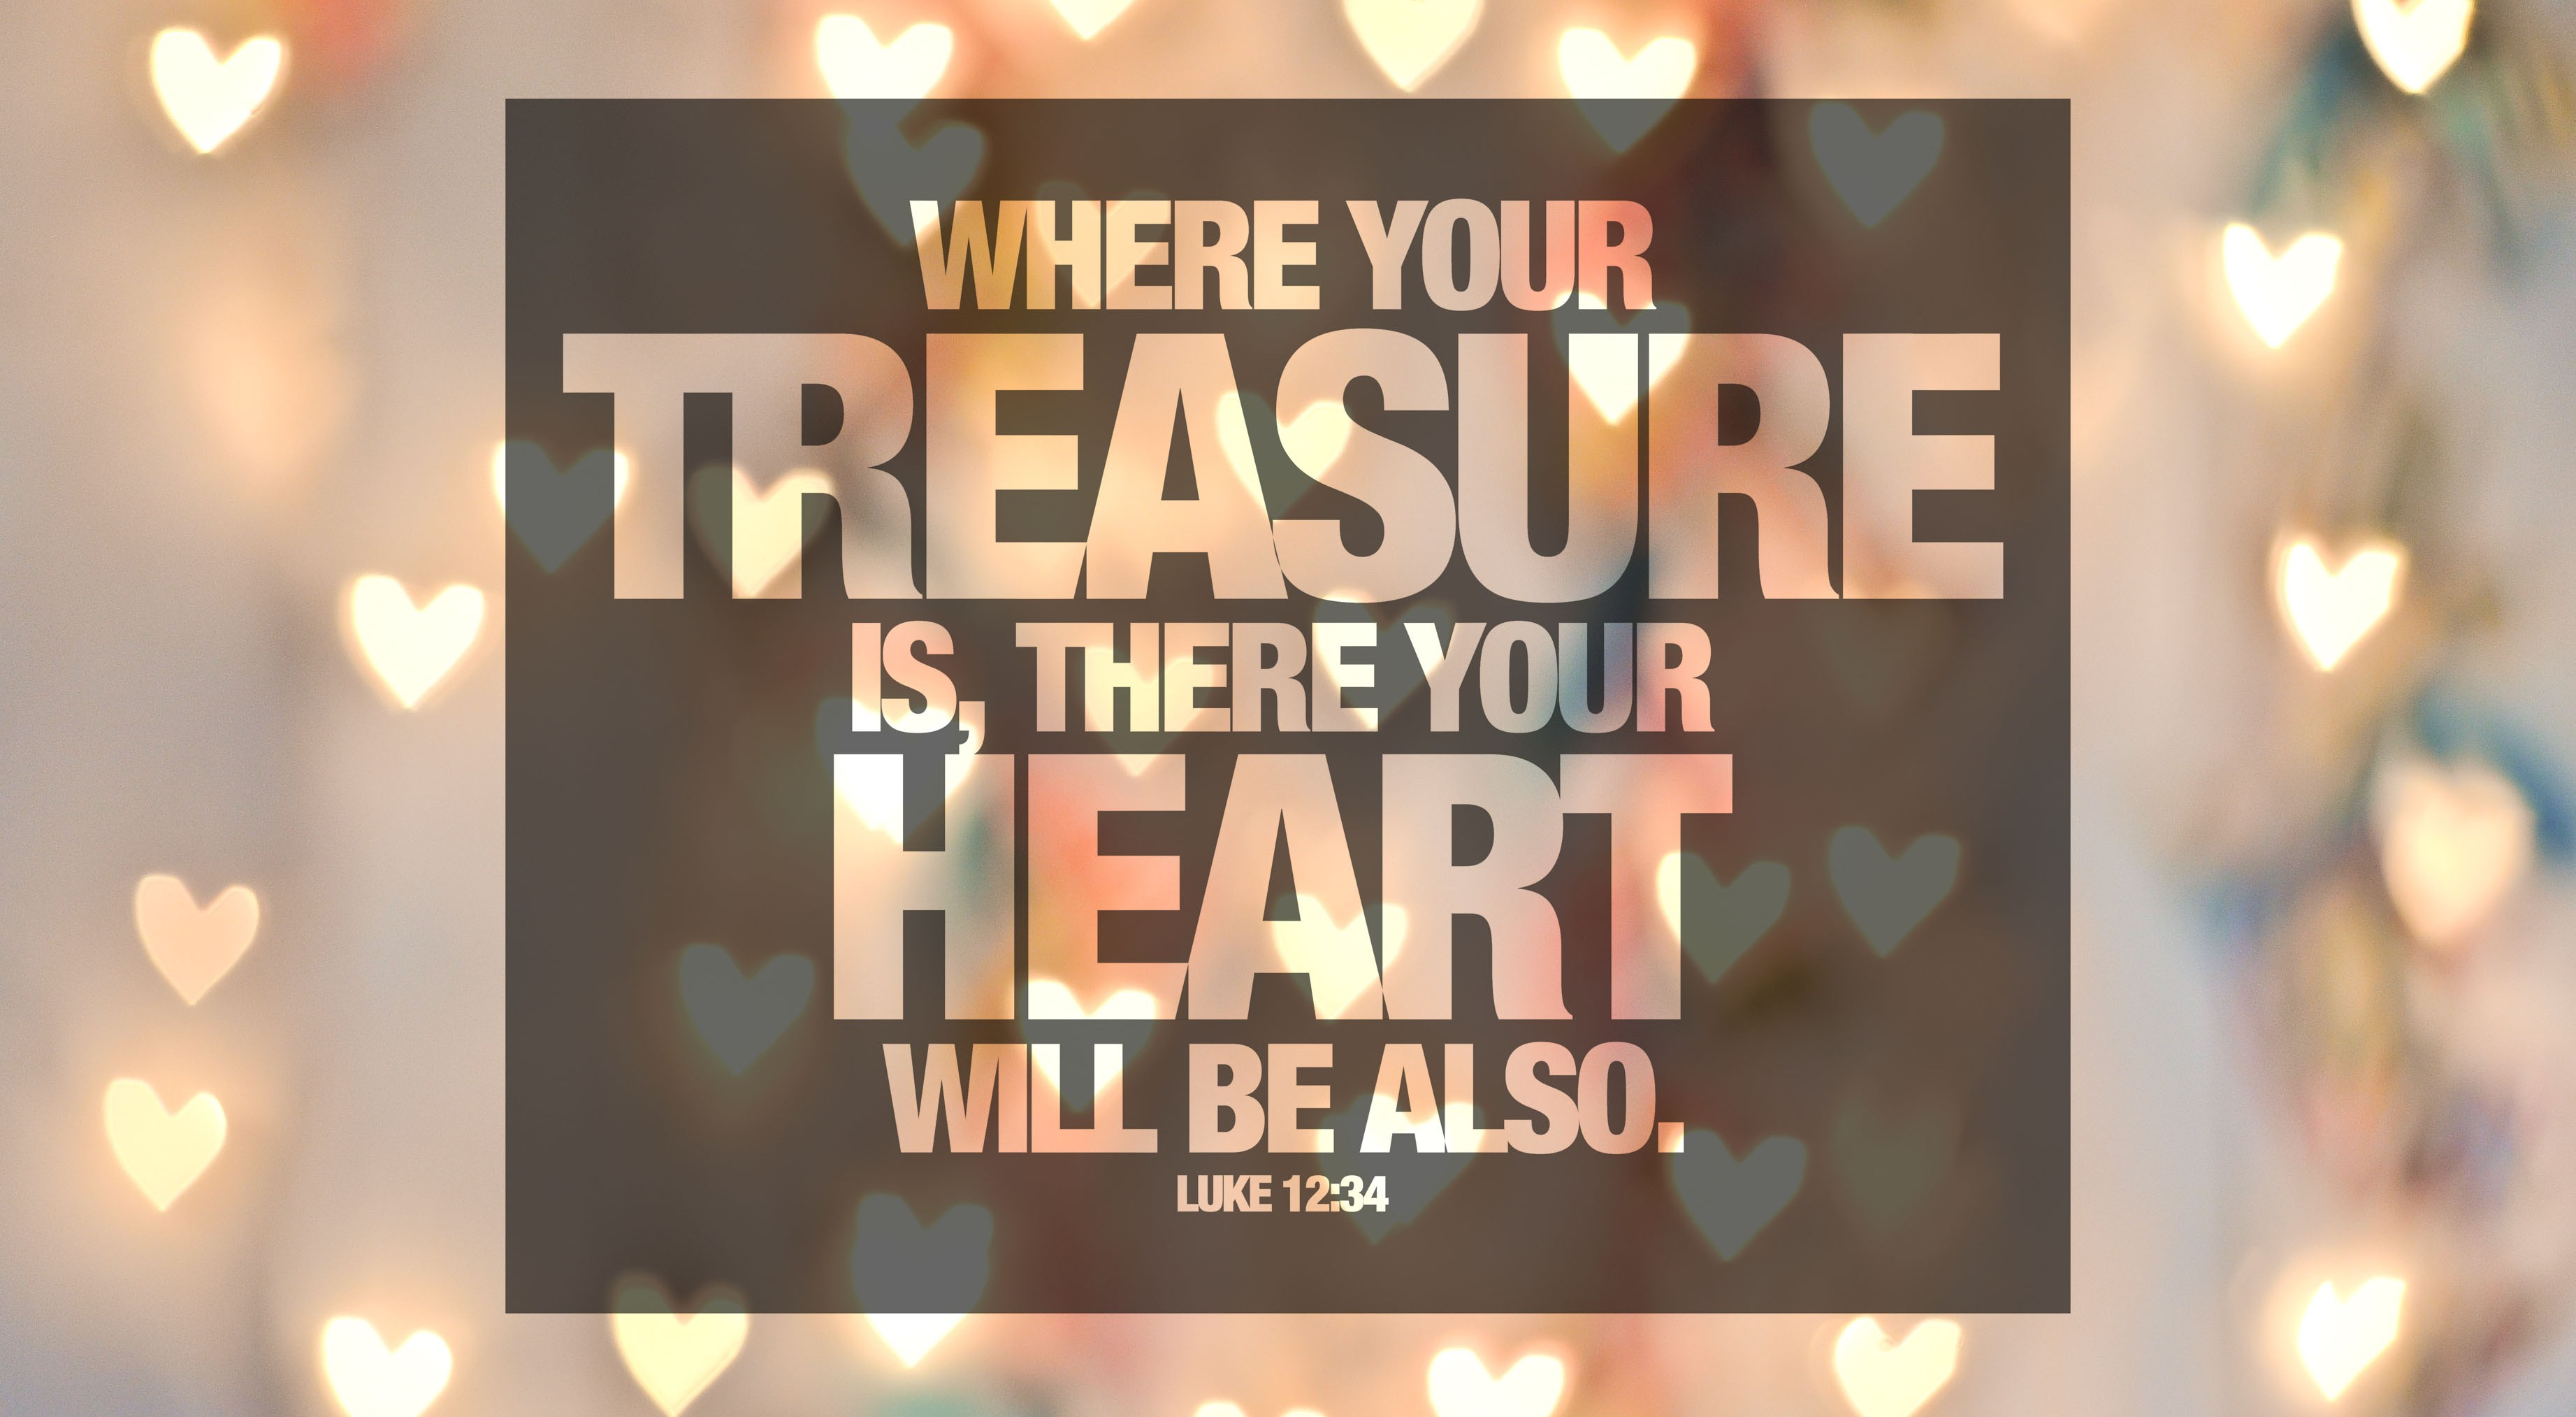 bible-verse-luke-1234-where-your-treasure-is-there-your-heart-will-be-also-2014-for-slideshow-e1455421849201